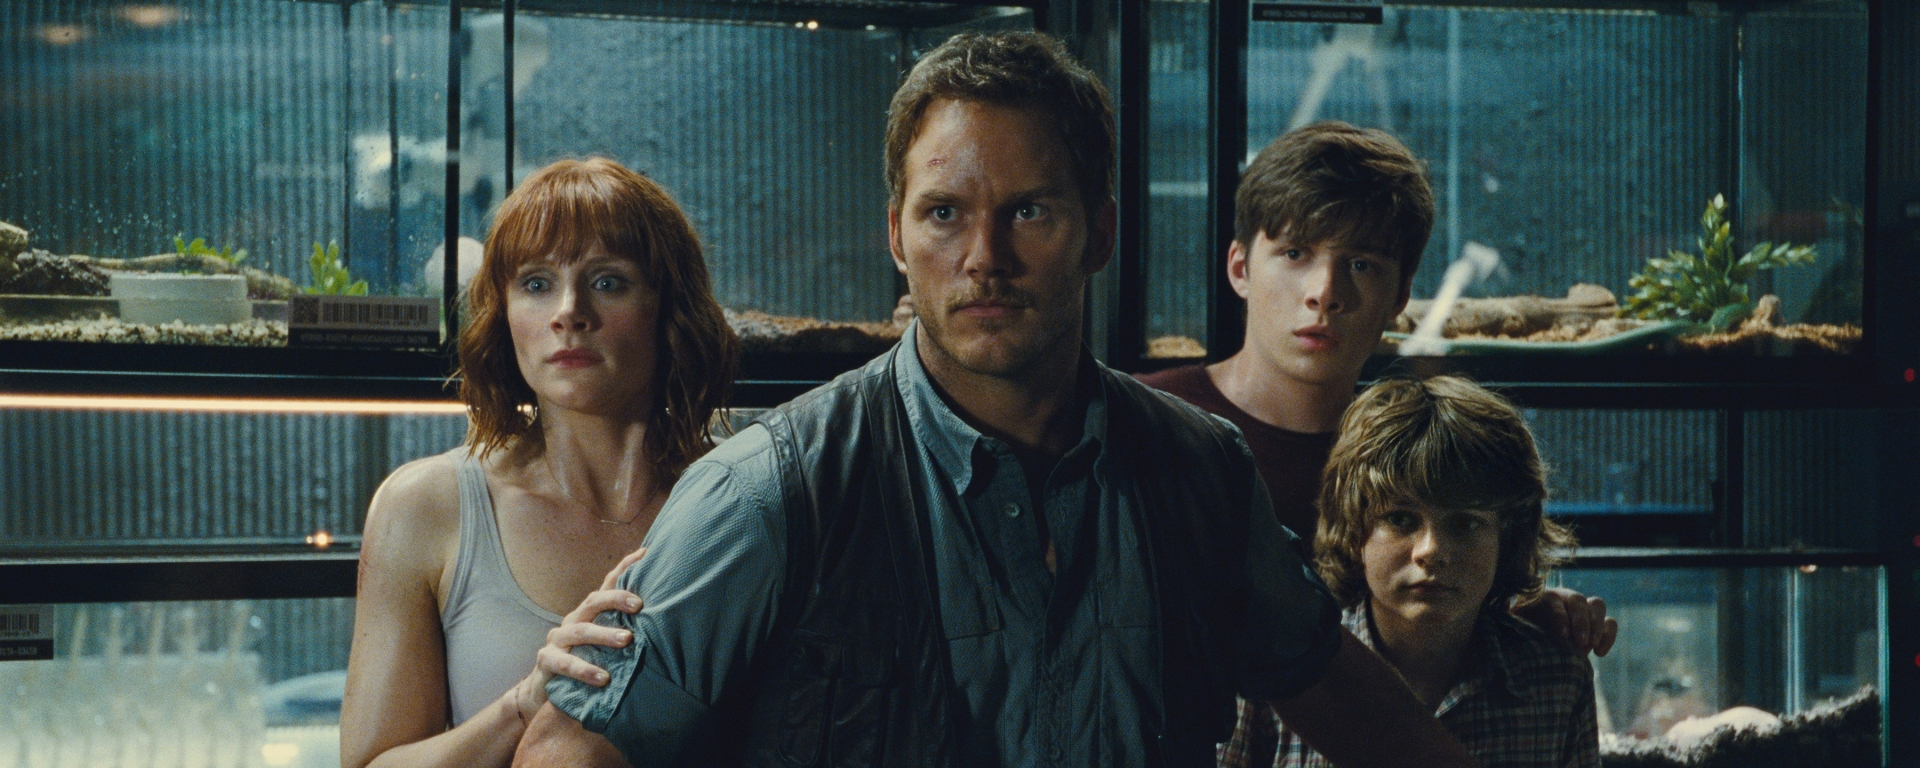 Jurassic World - CineFatti